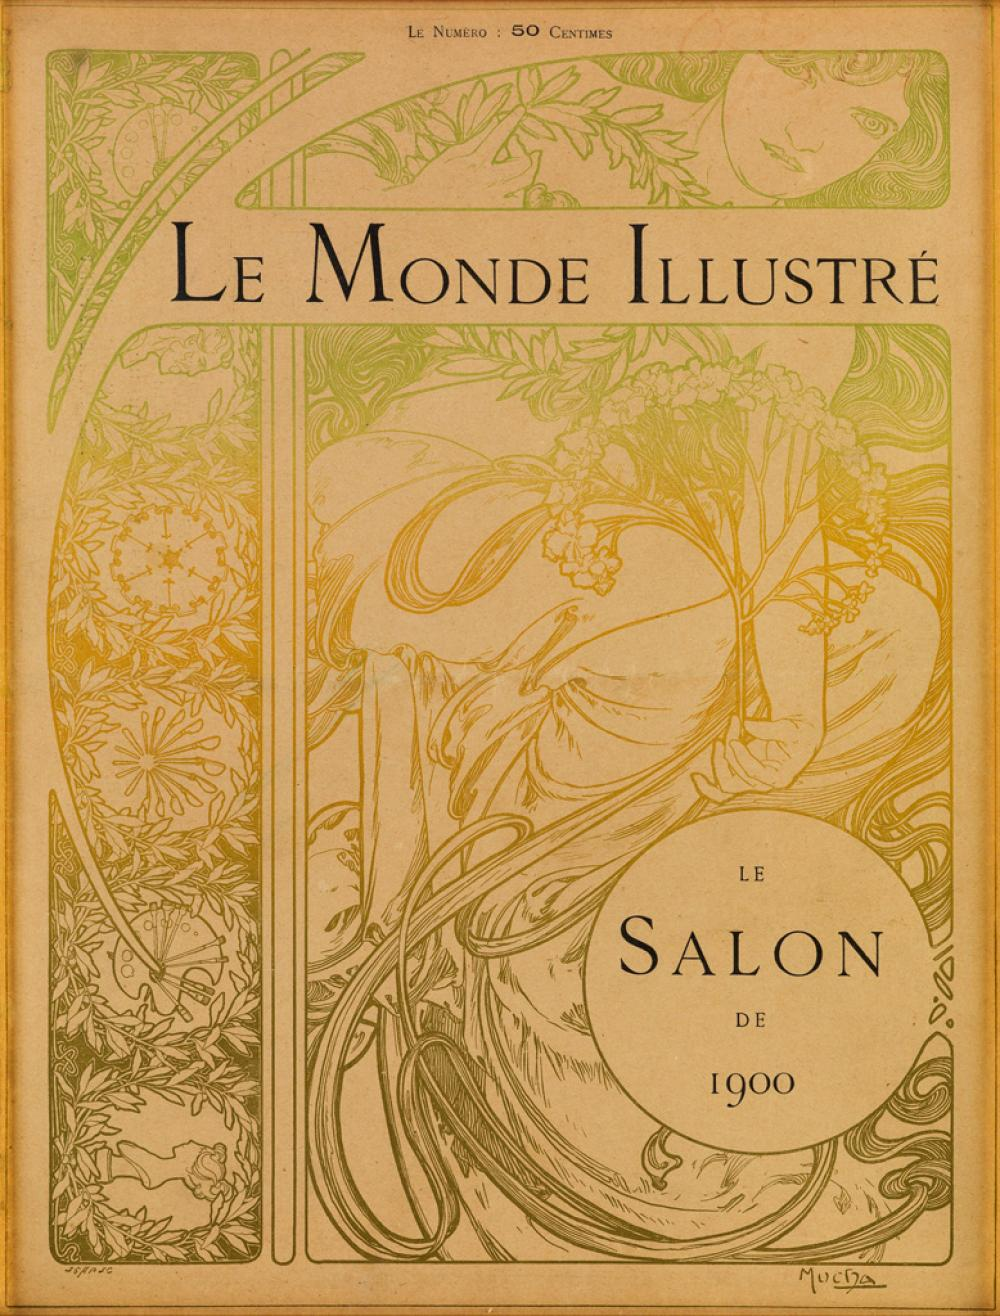 ALPHONSE MUCHA (1860-1939). LE MONDE ILLUSTRÉ. Magazine cover. 1900. 15x11 inches, 38x28 cm.